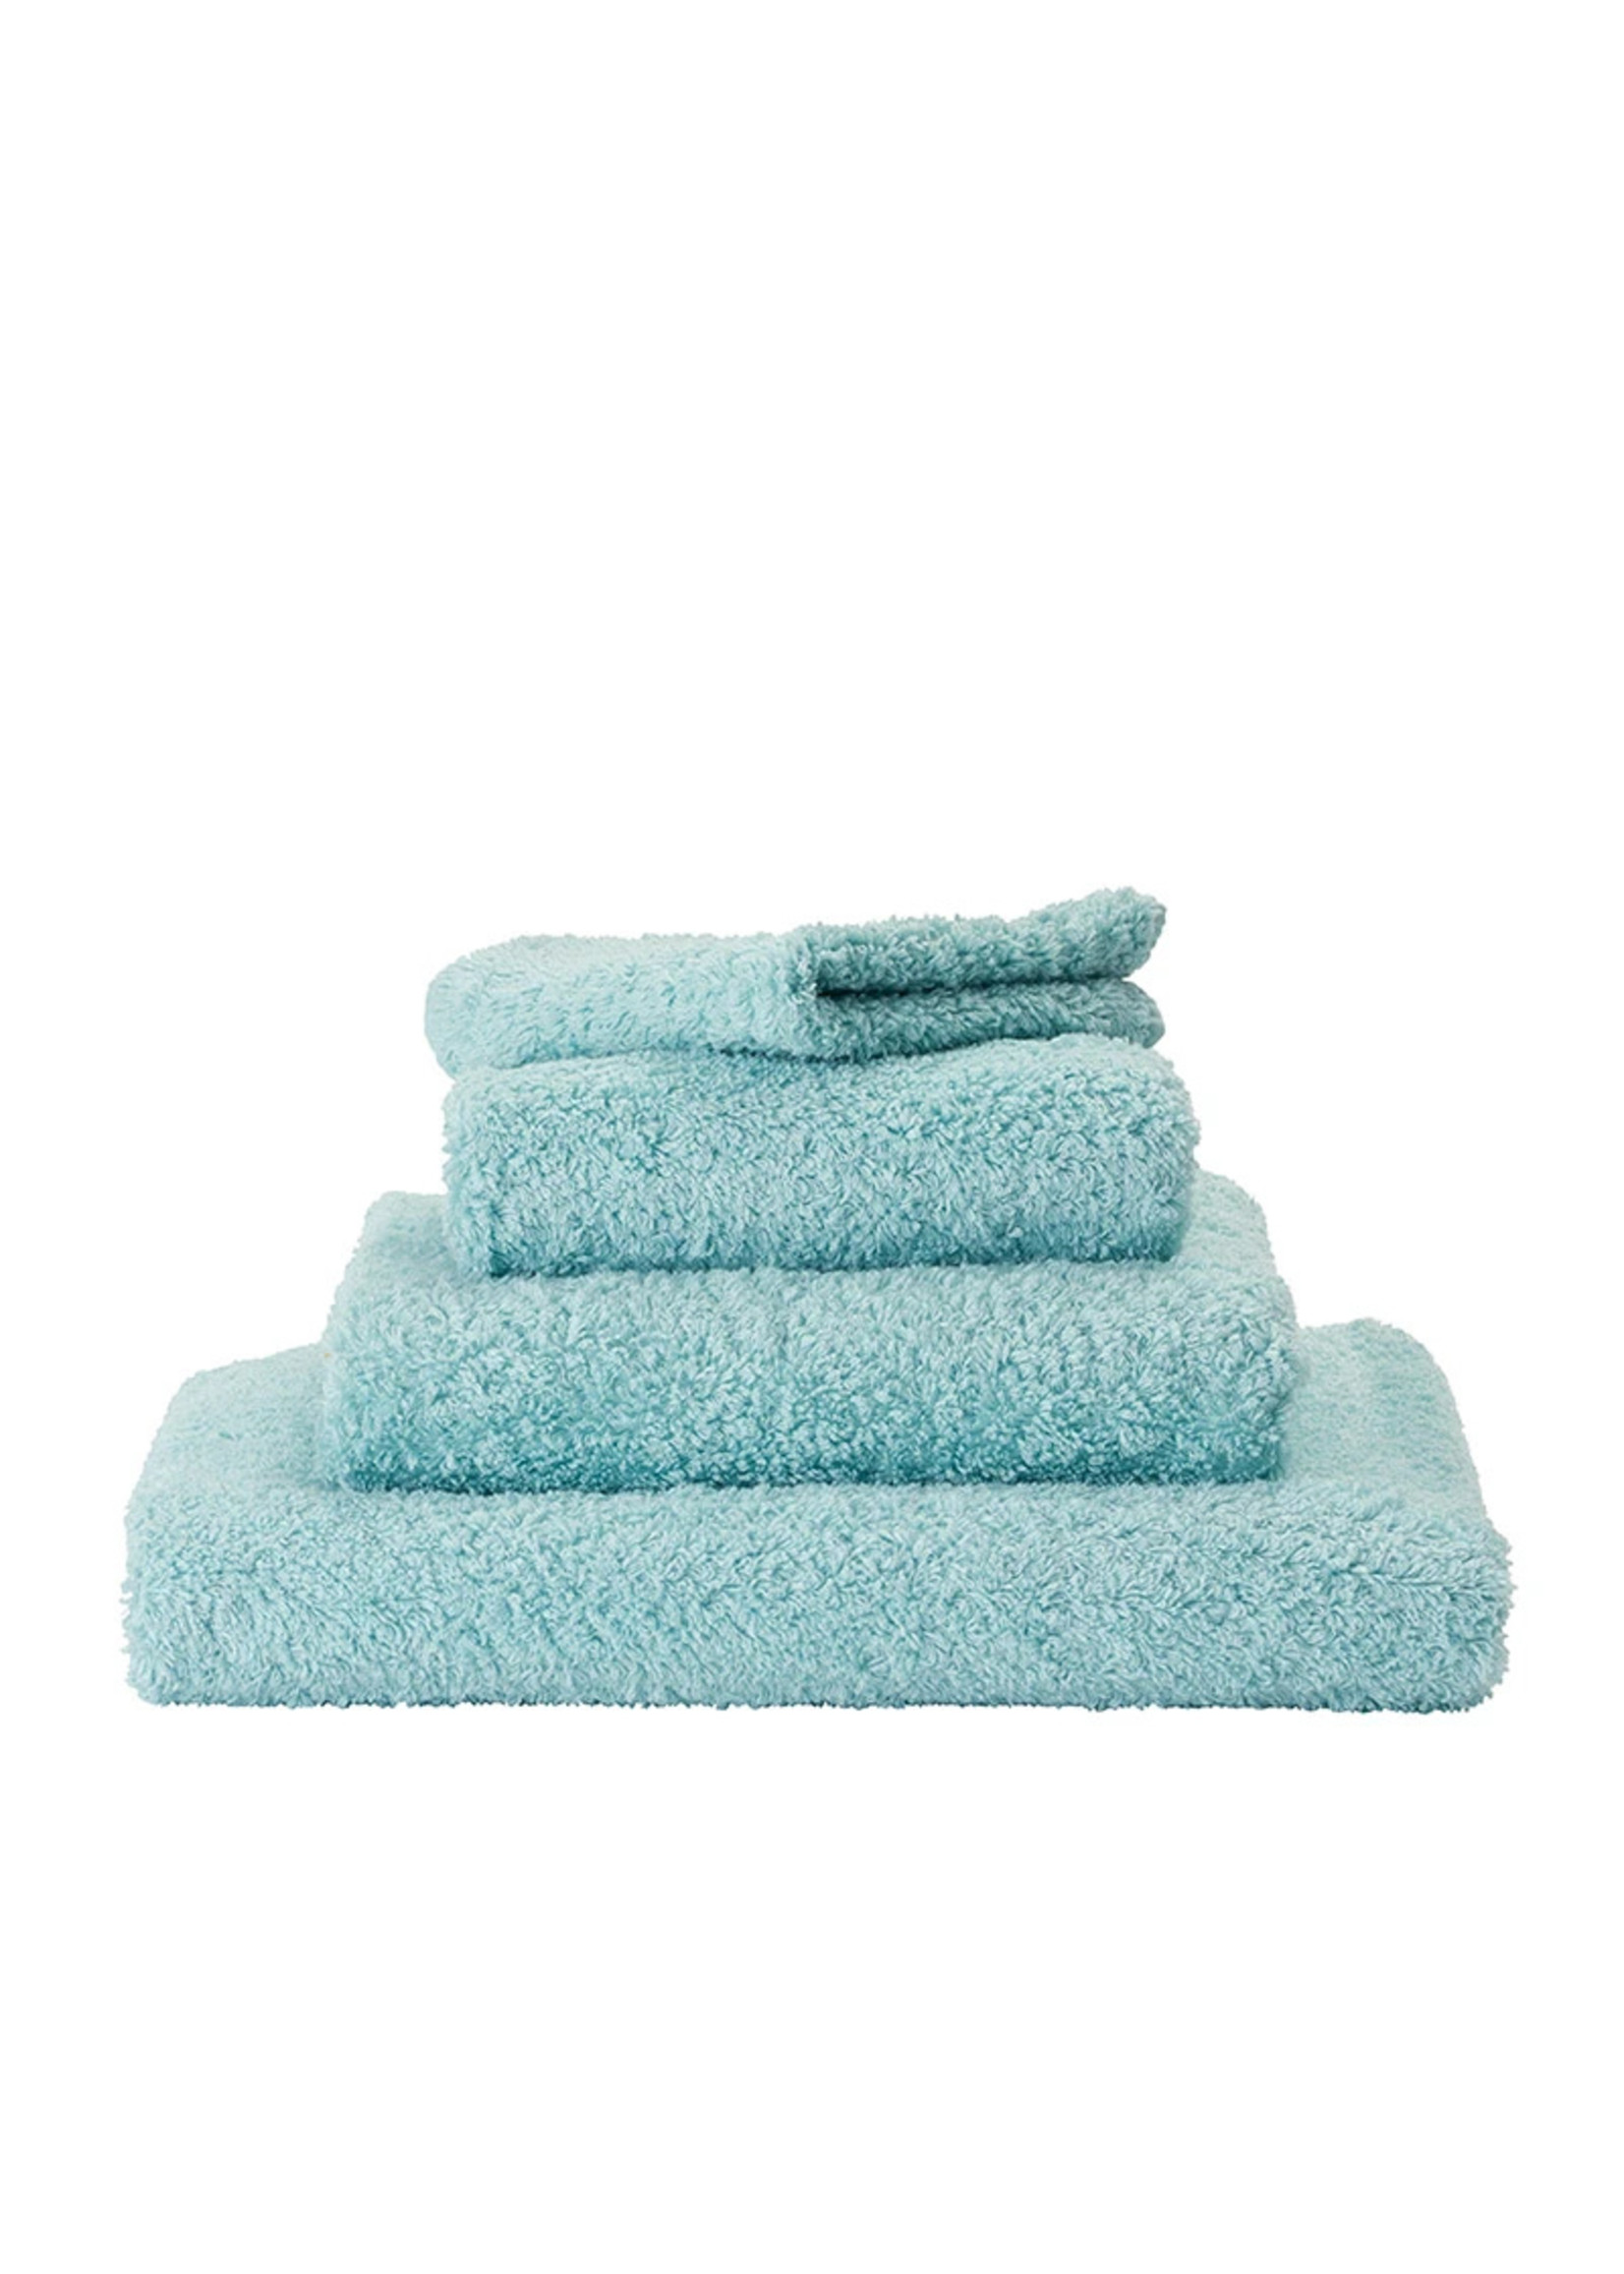 Abyss & Habidecor Super Pile Ice Towels